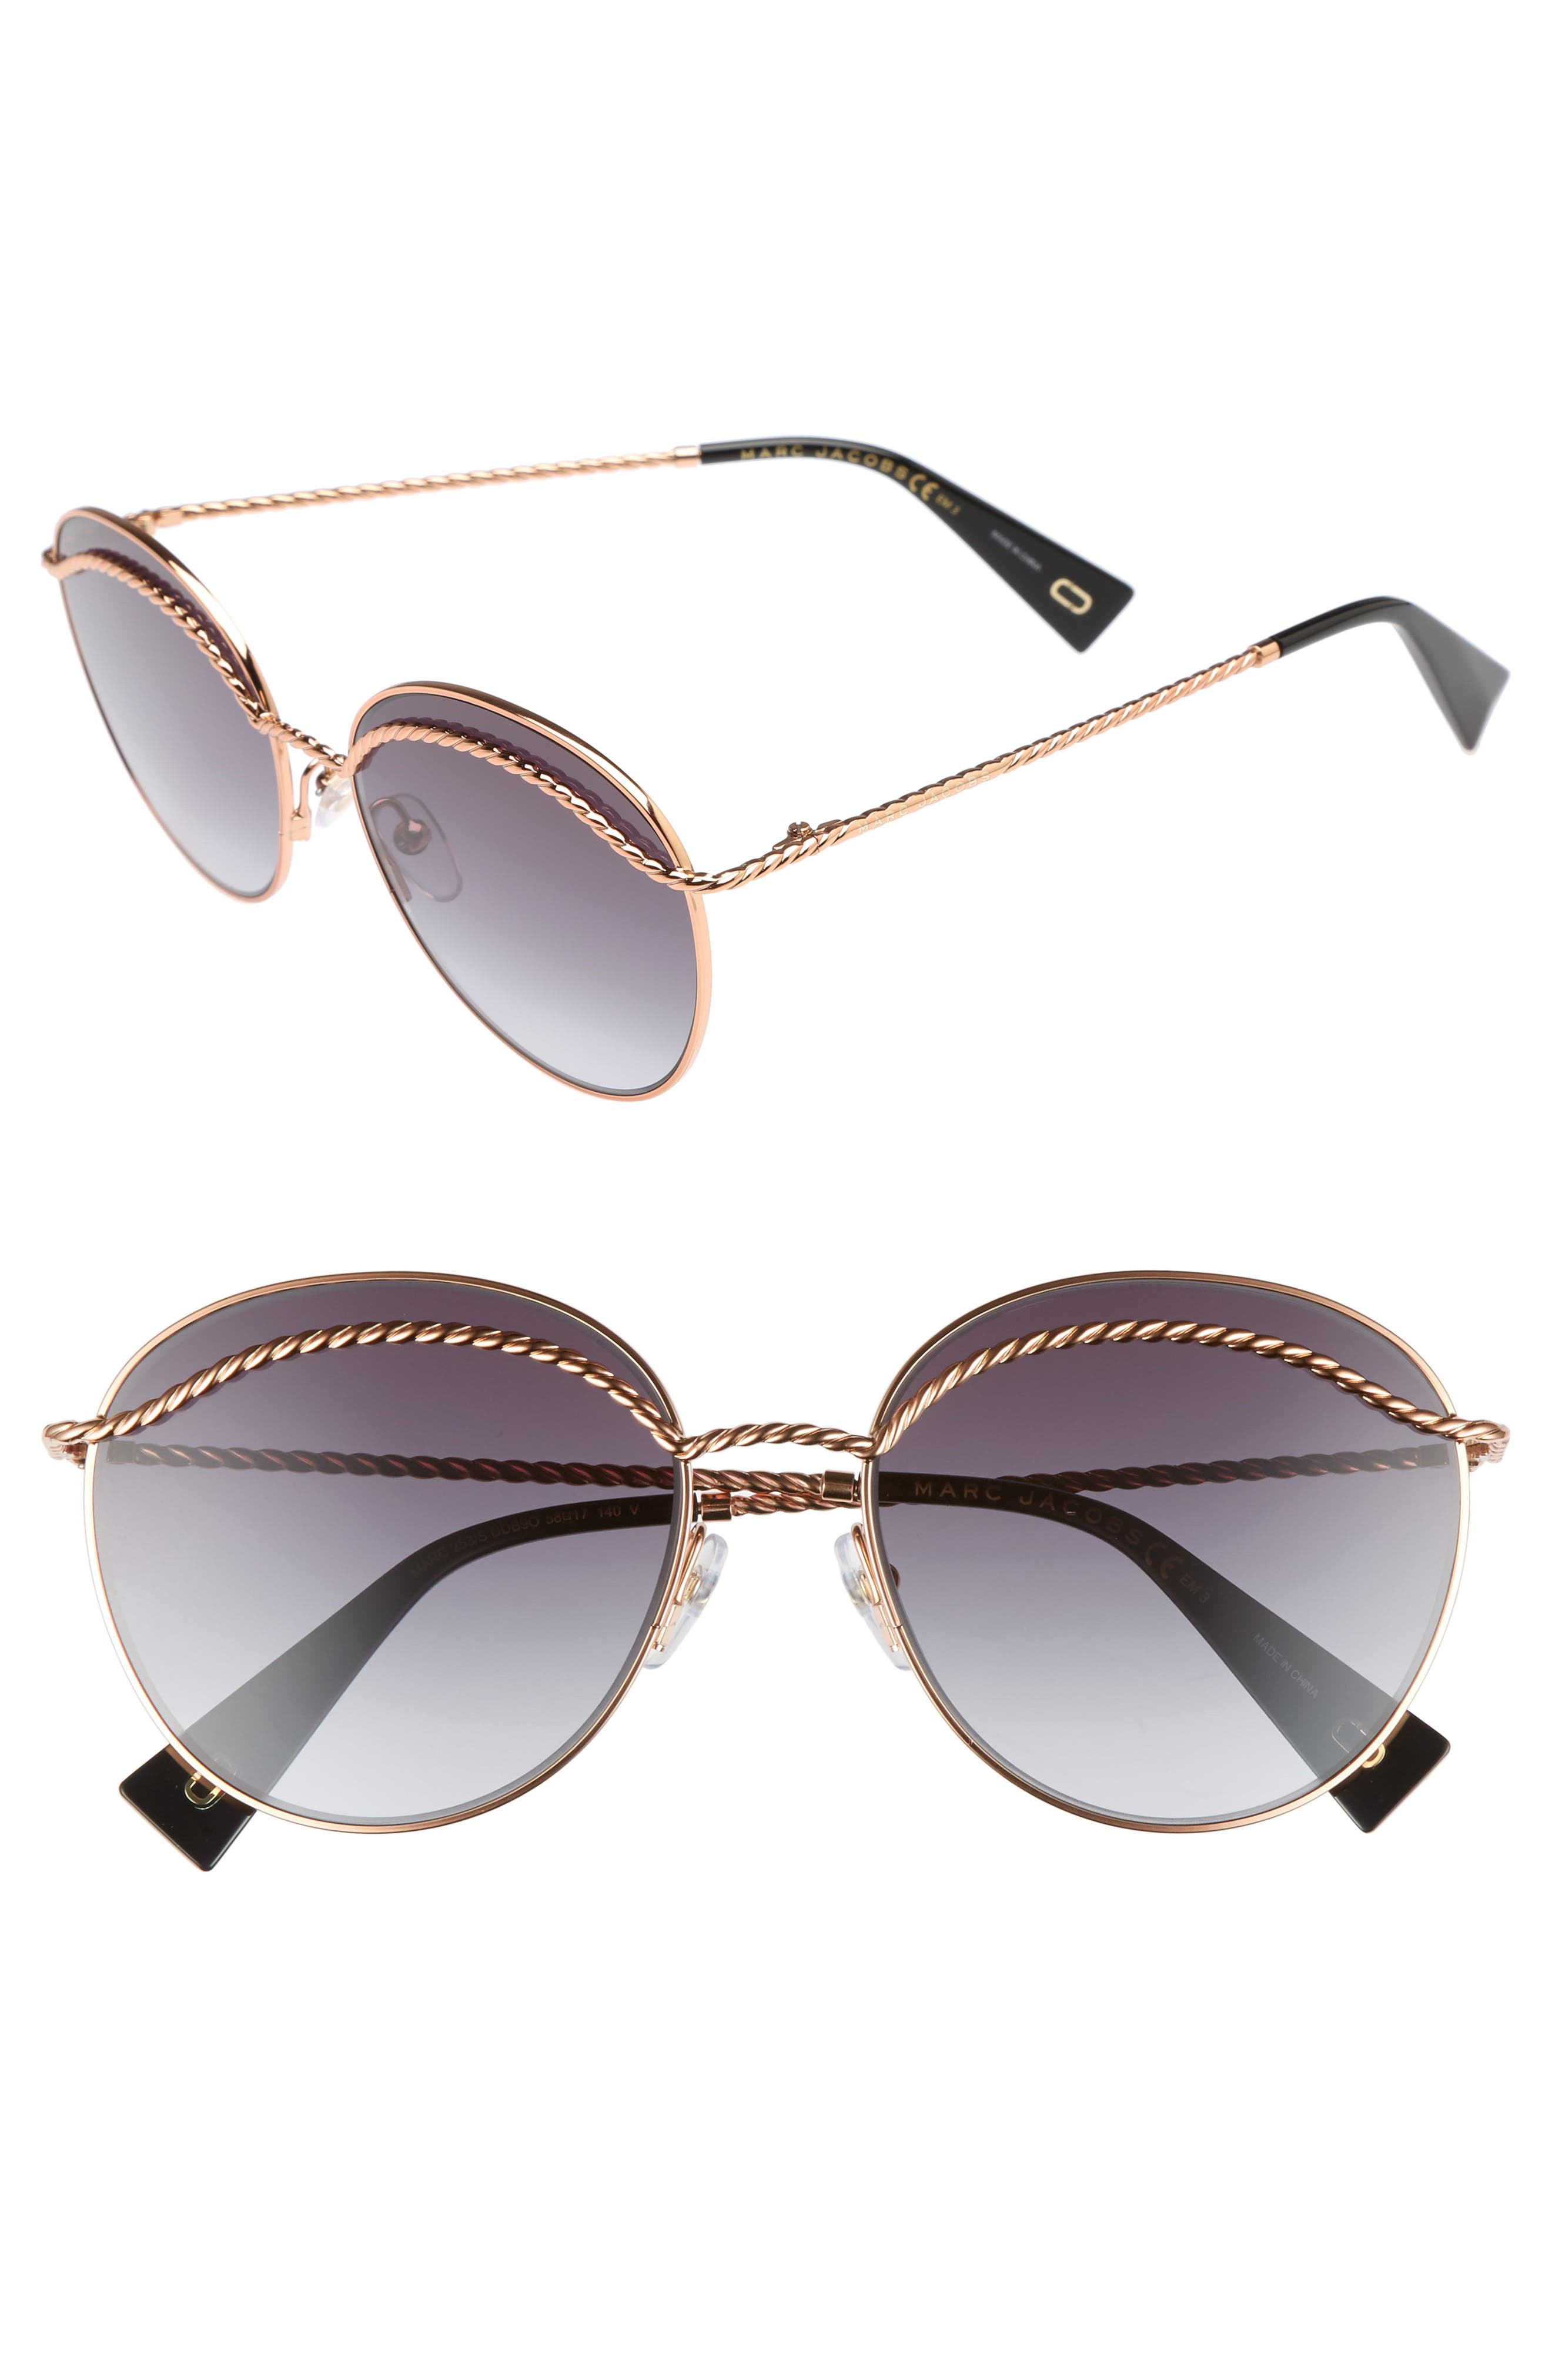 Alternate Image 1 Selected - MARC JACOBS 58mm Round Sunglasses